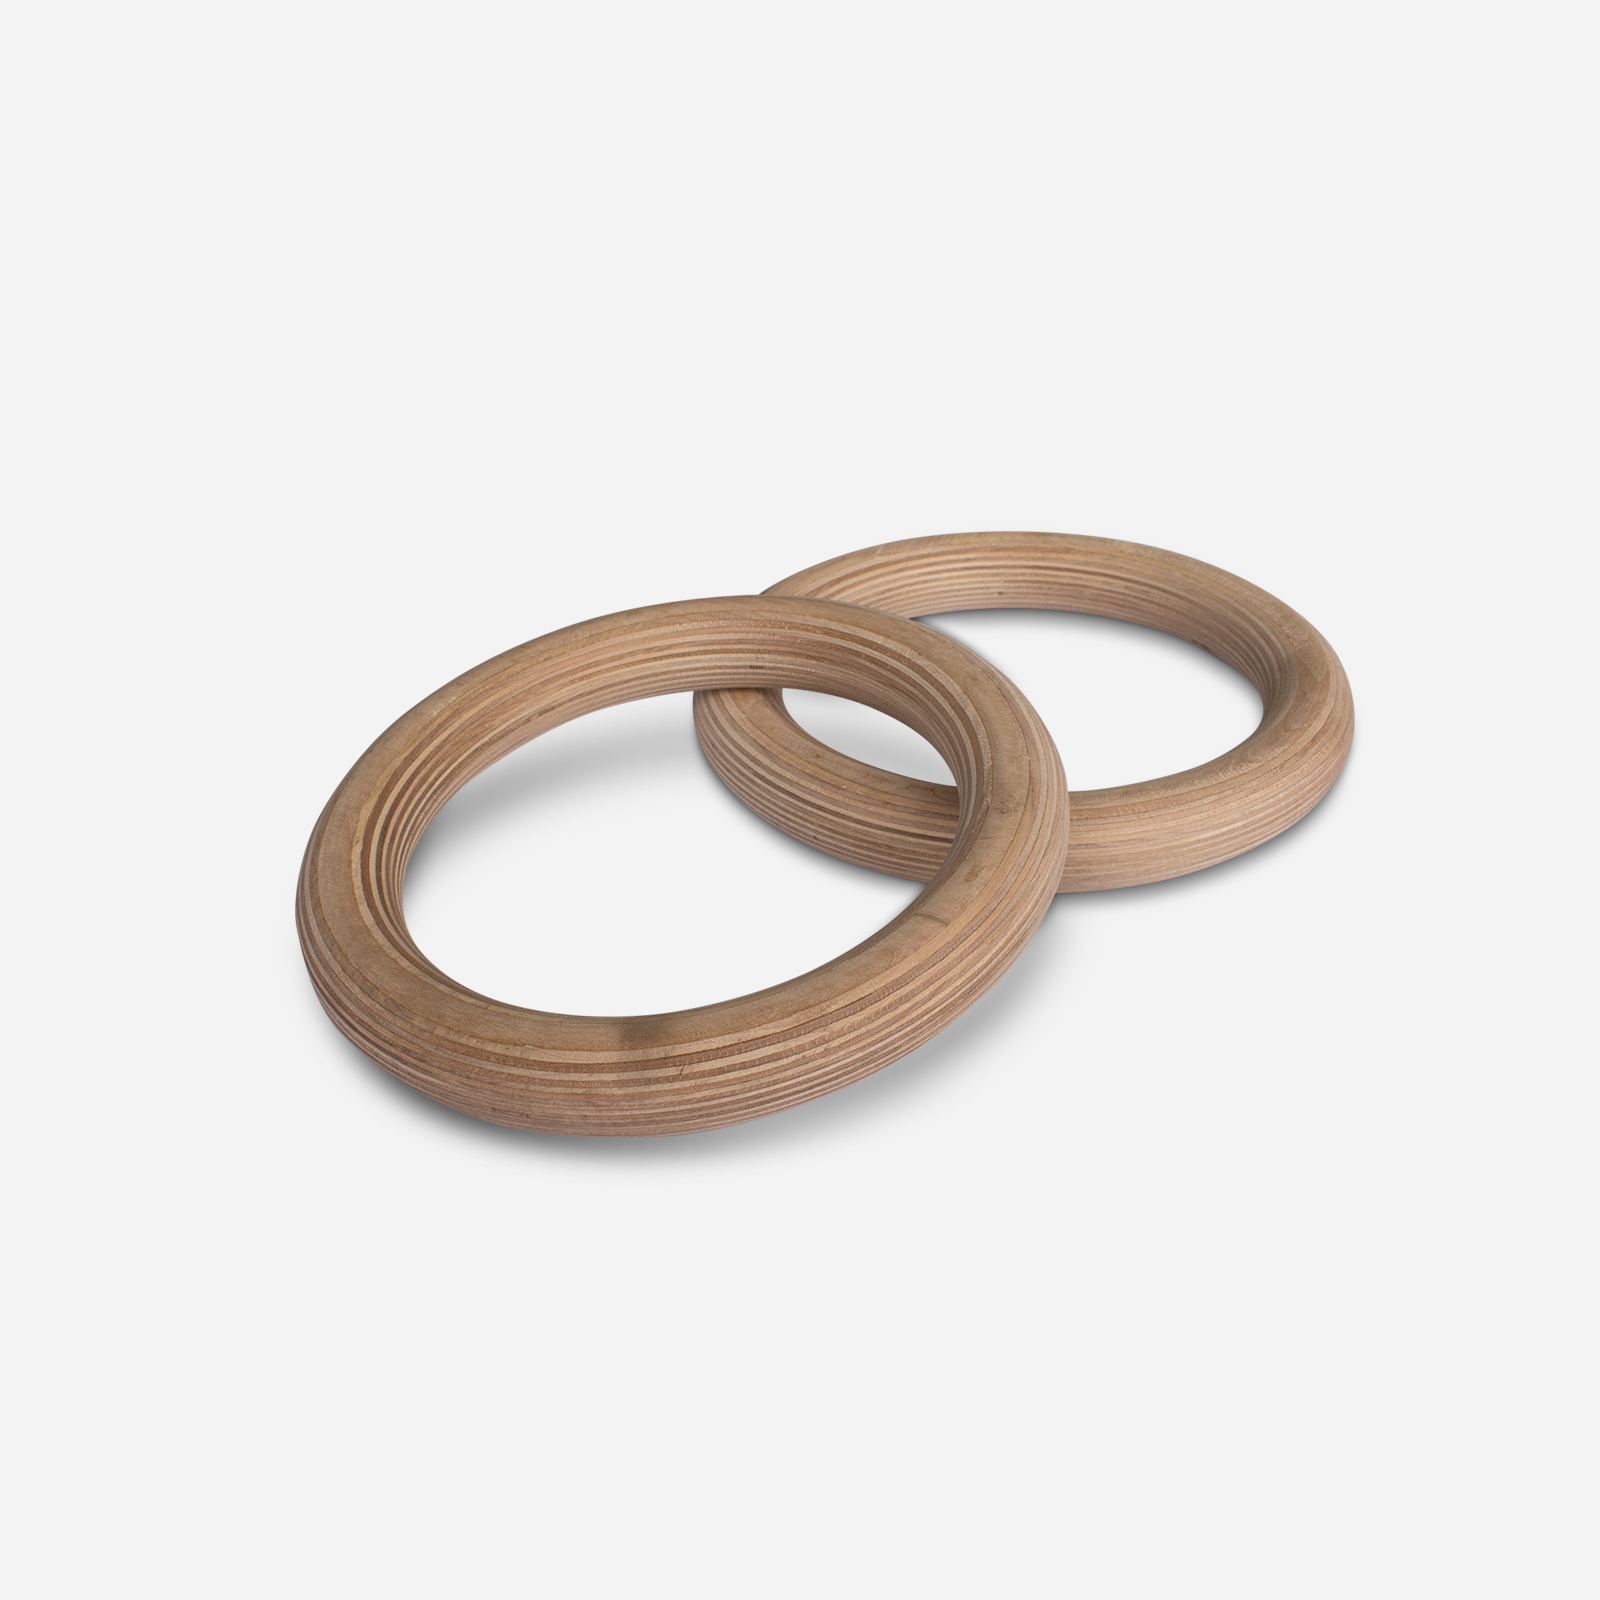 Wooden Gymnastics Rings image